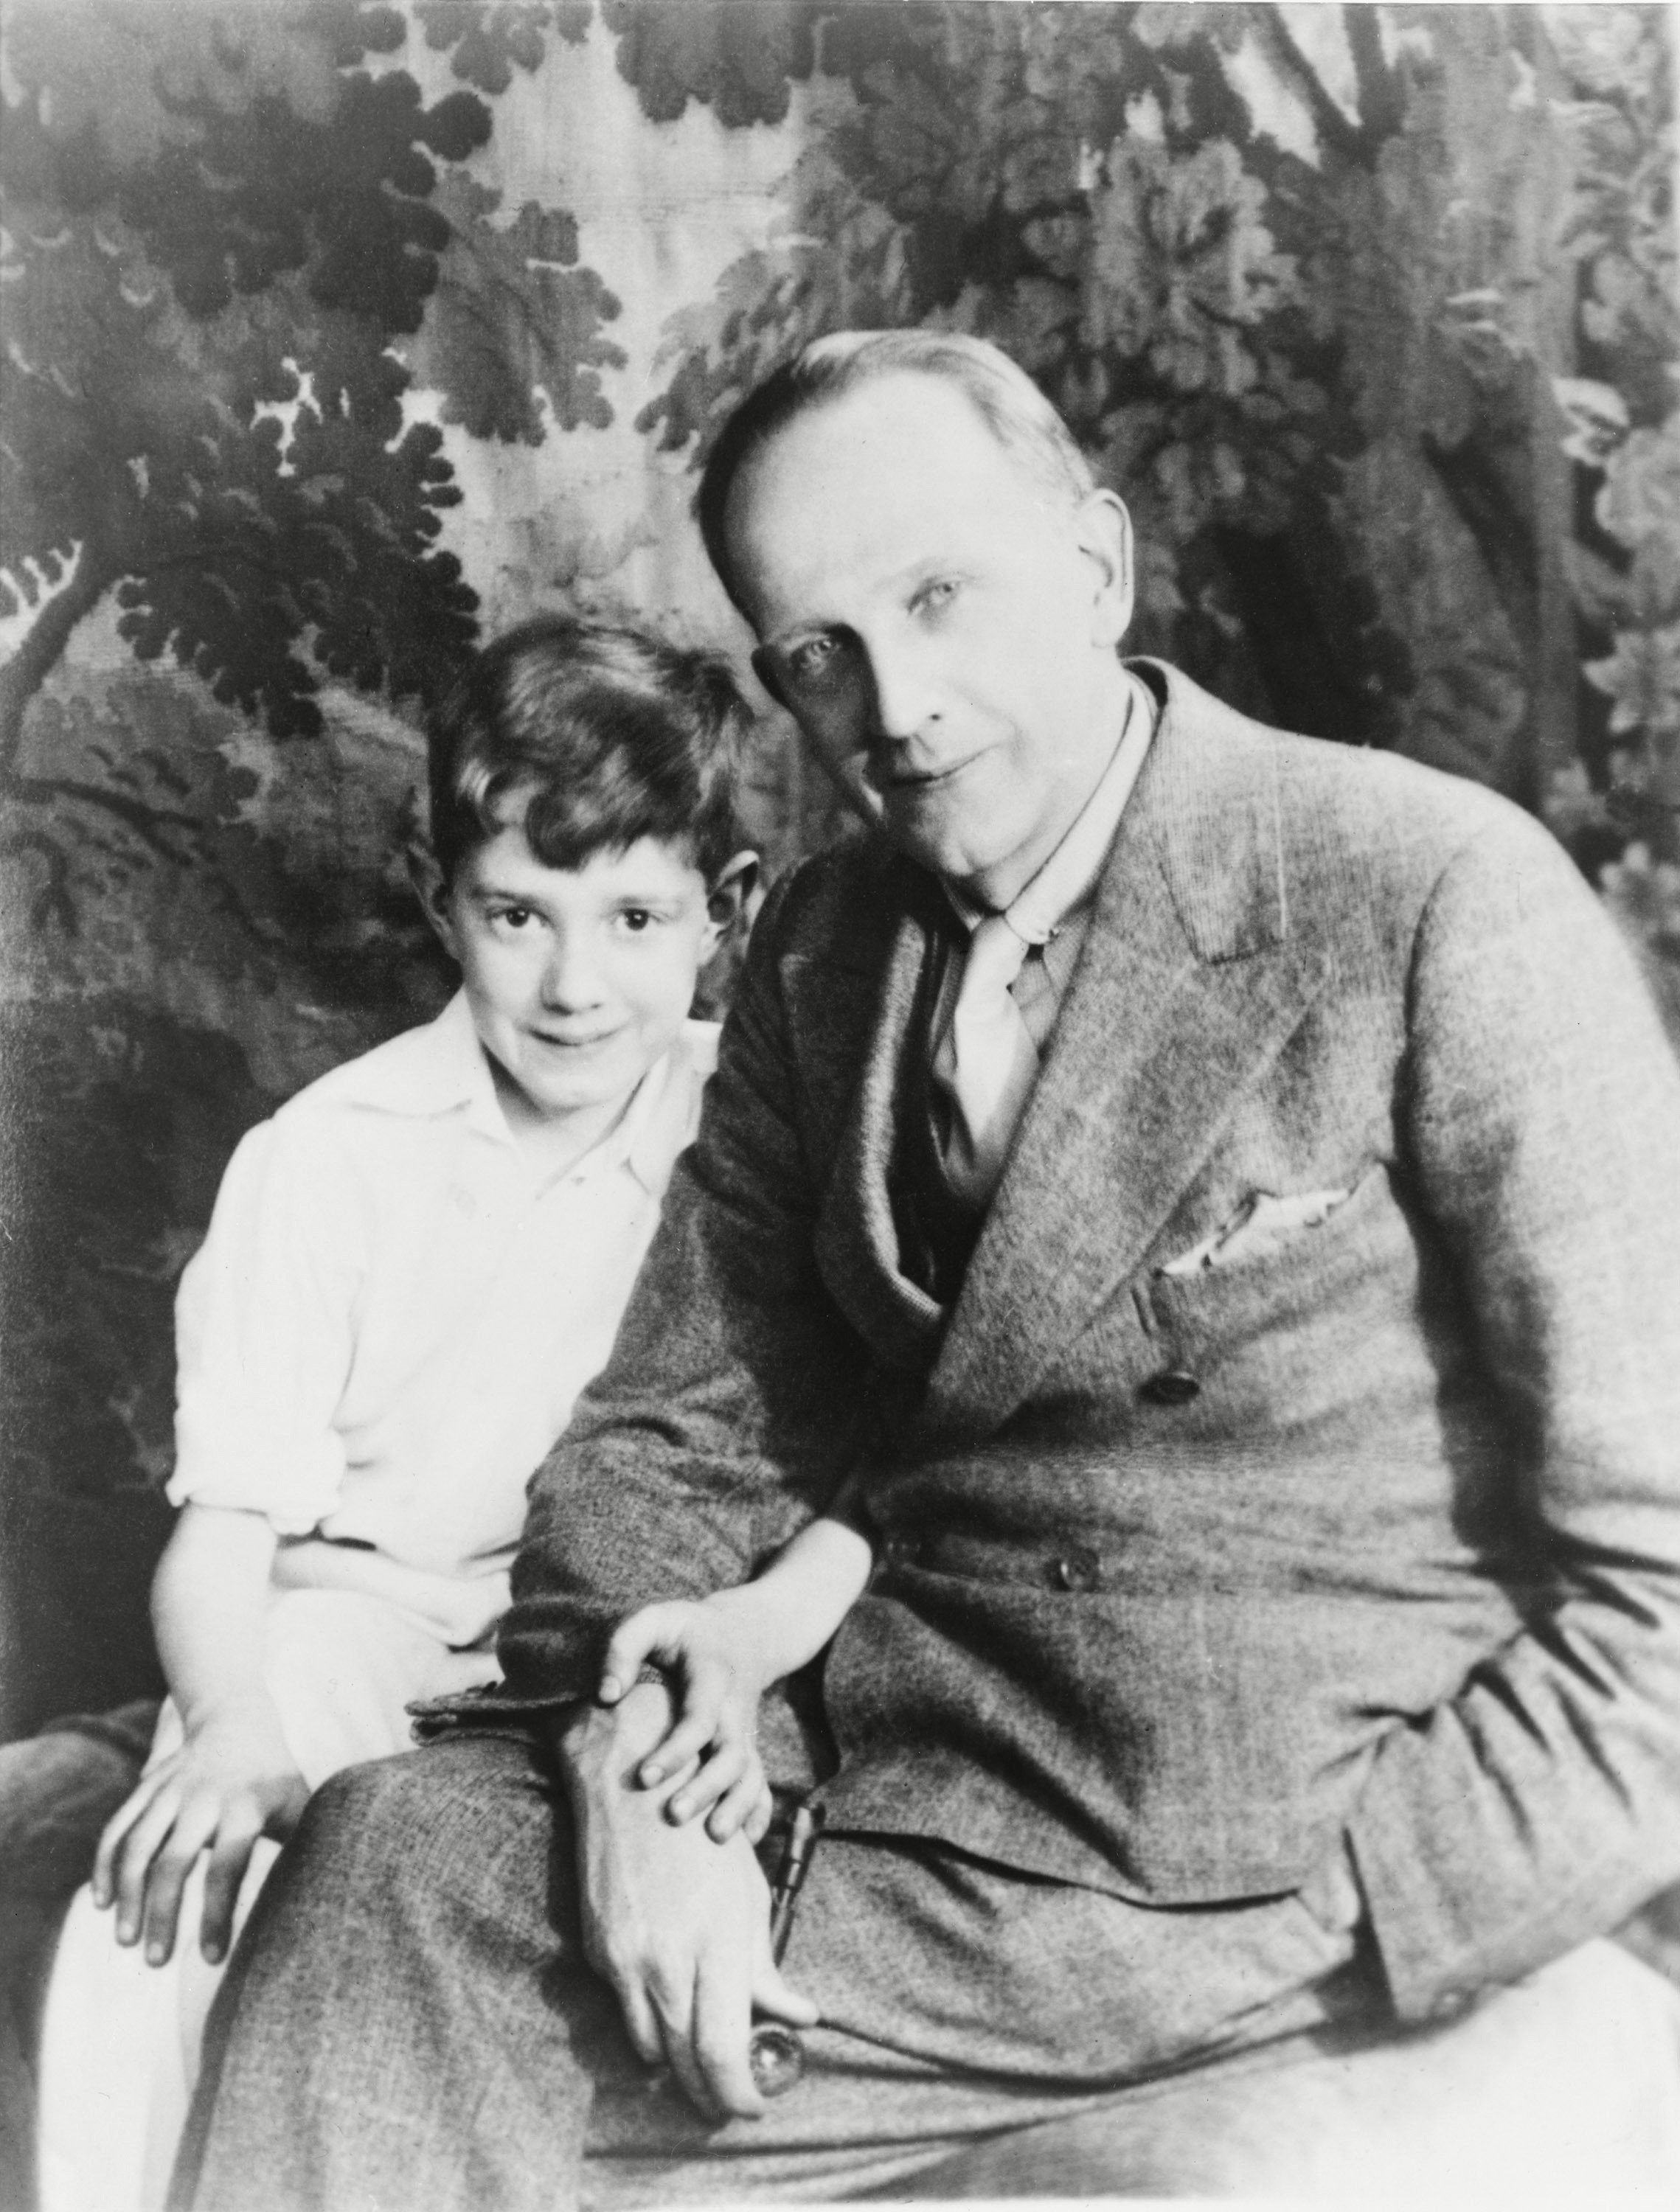 Mandatory Credit: Photo by Everett/Shutterstock (10275004a) A.A. Milne (1882-1956), the author of Winny the Pooh with his son, Christopher Robin (b.1920), on whom he based the character of the same name. Historical Collection